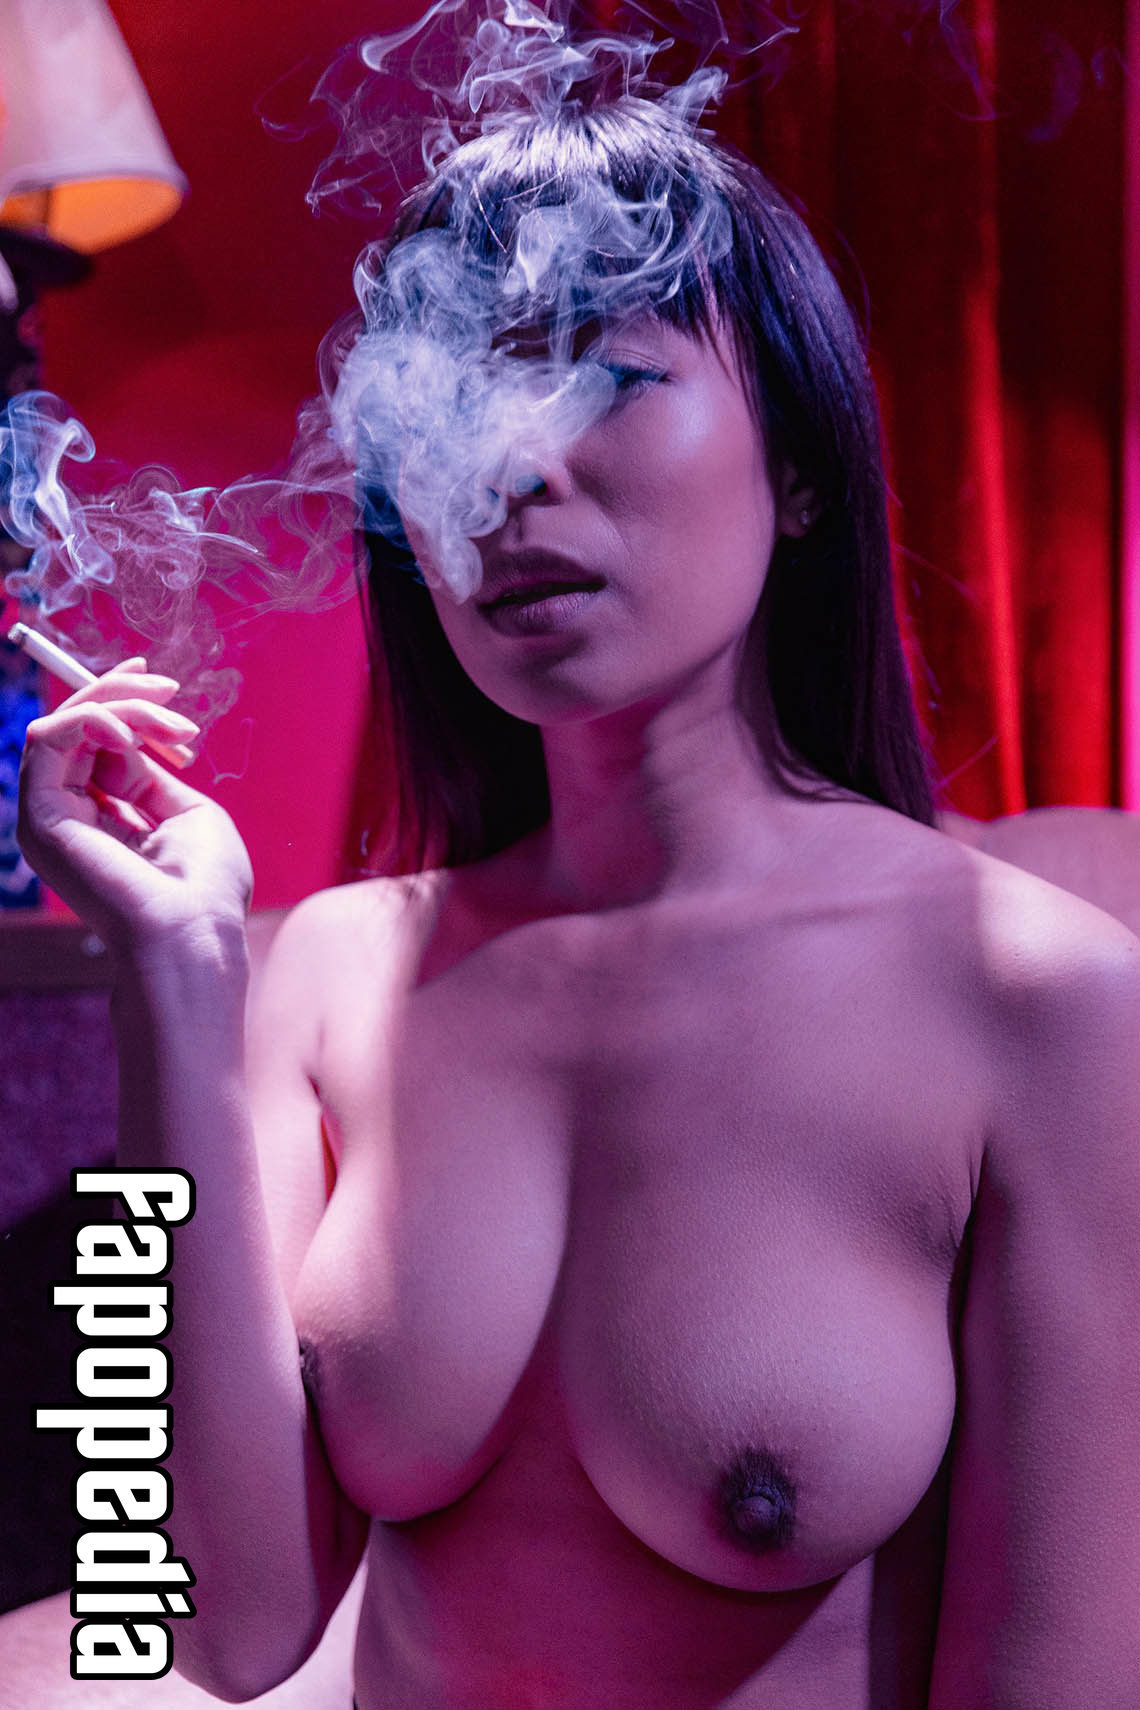 Thanni Hoang Nude Leaks